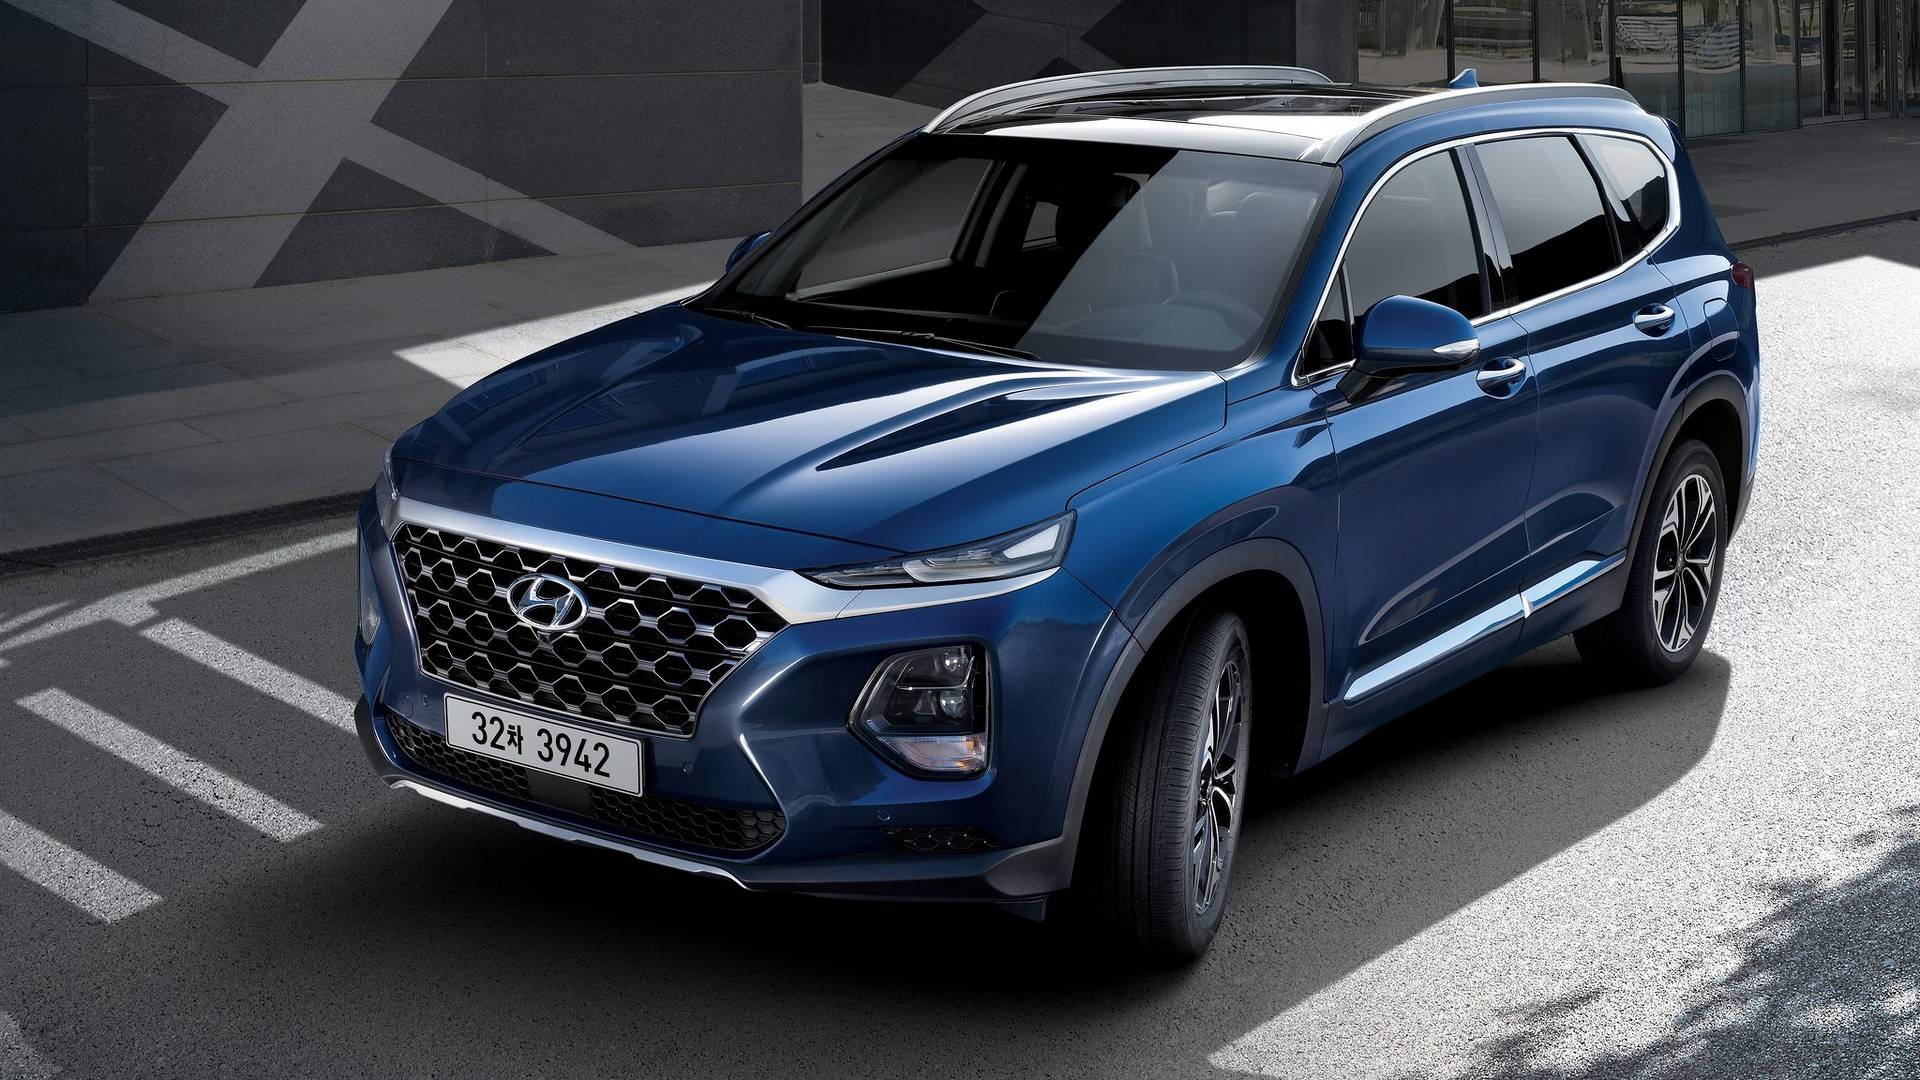 2019 hyundai santa fe looks magnificent in new official. Black Bedroom Furniture Sets. Home Design Ideas